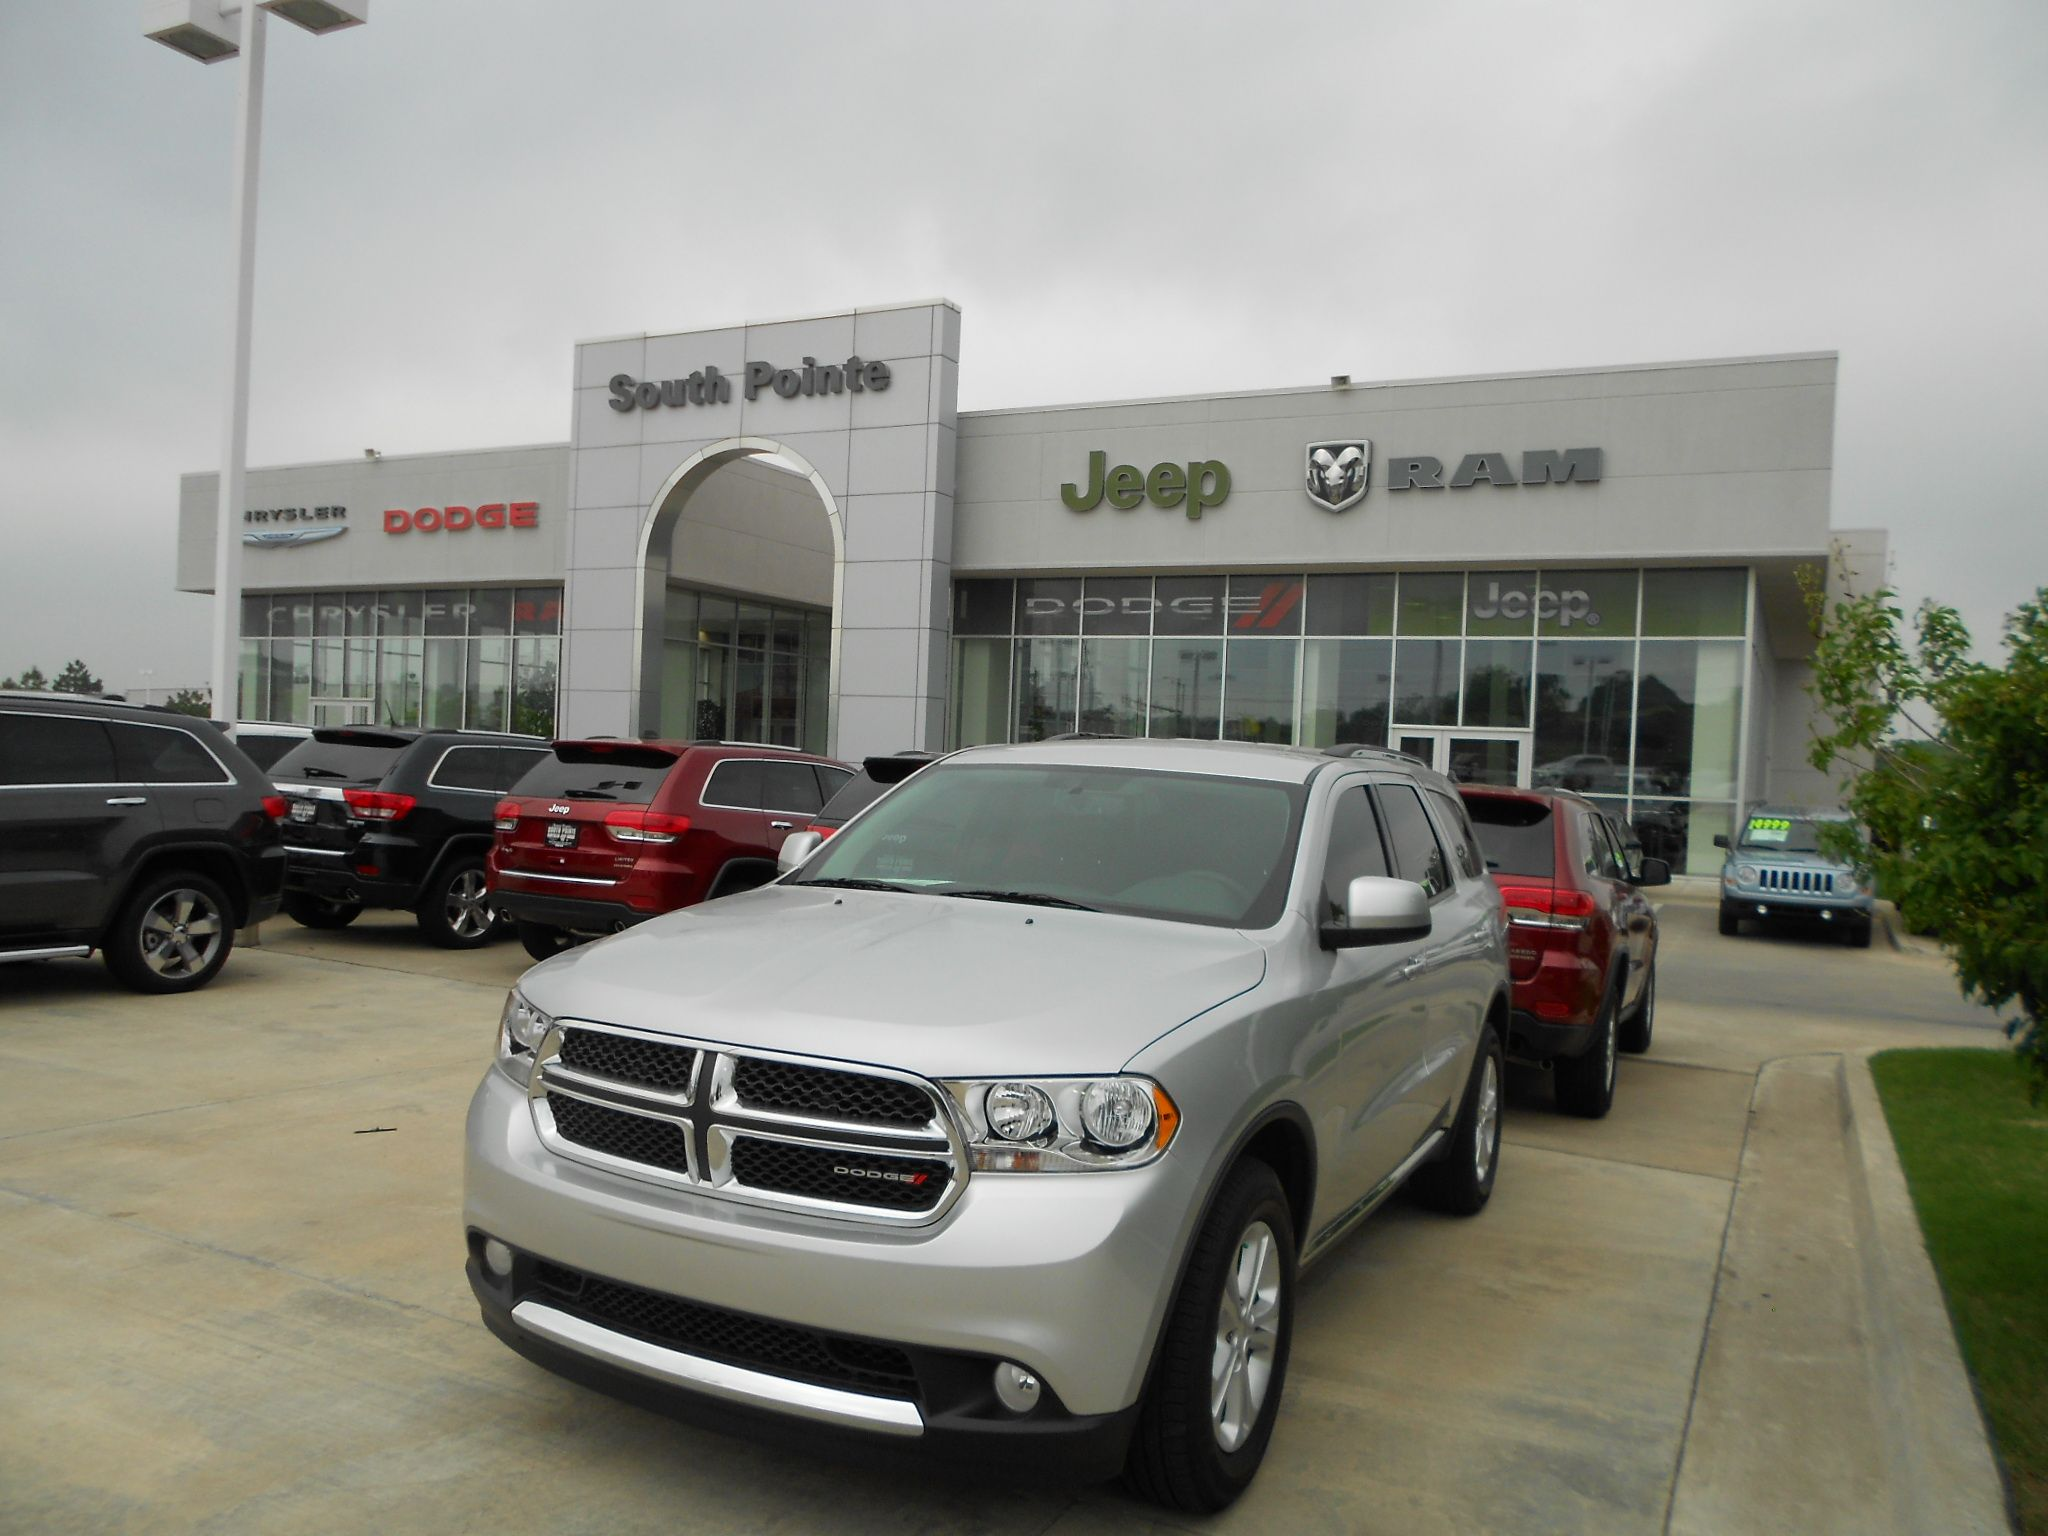 Lovely Welcome To South Pointe Chrysler Jeep Dodge  Tulsa, Oklahoma